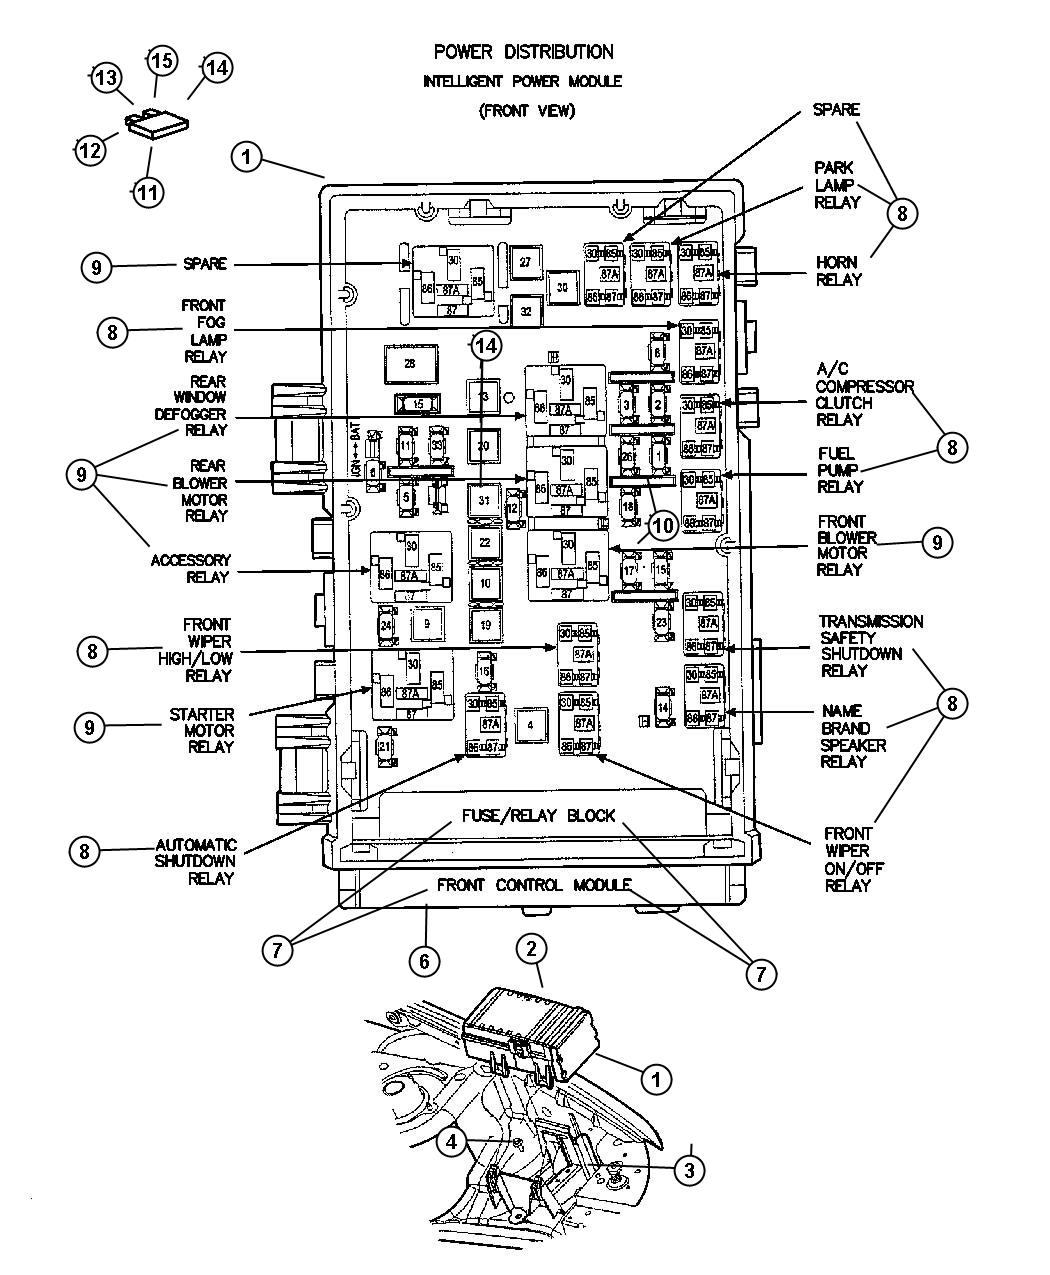 Chrysler Town & Country Module. Power distribution. With